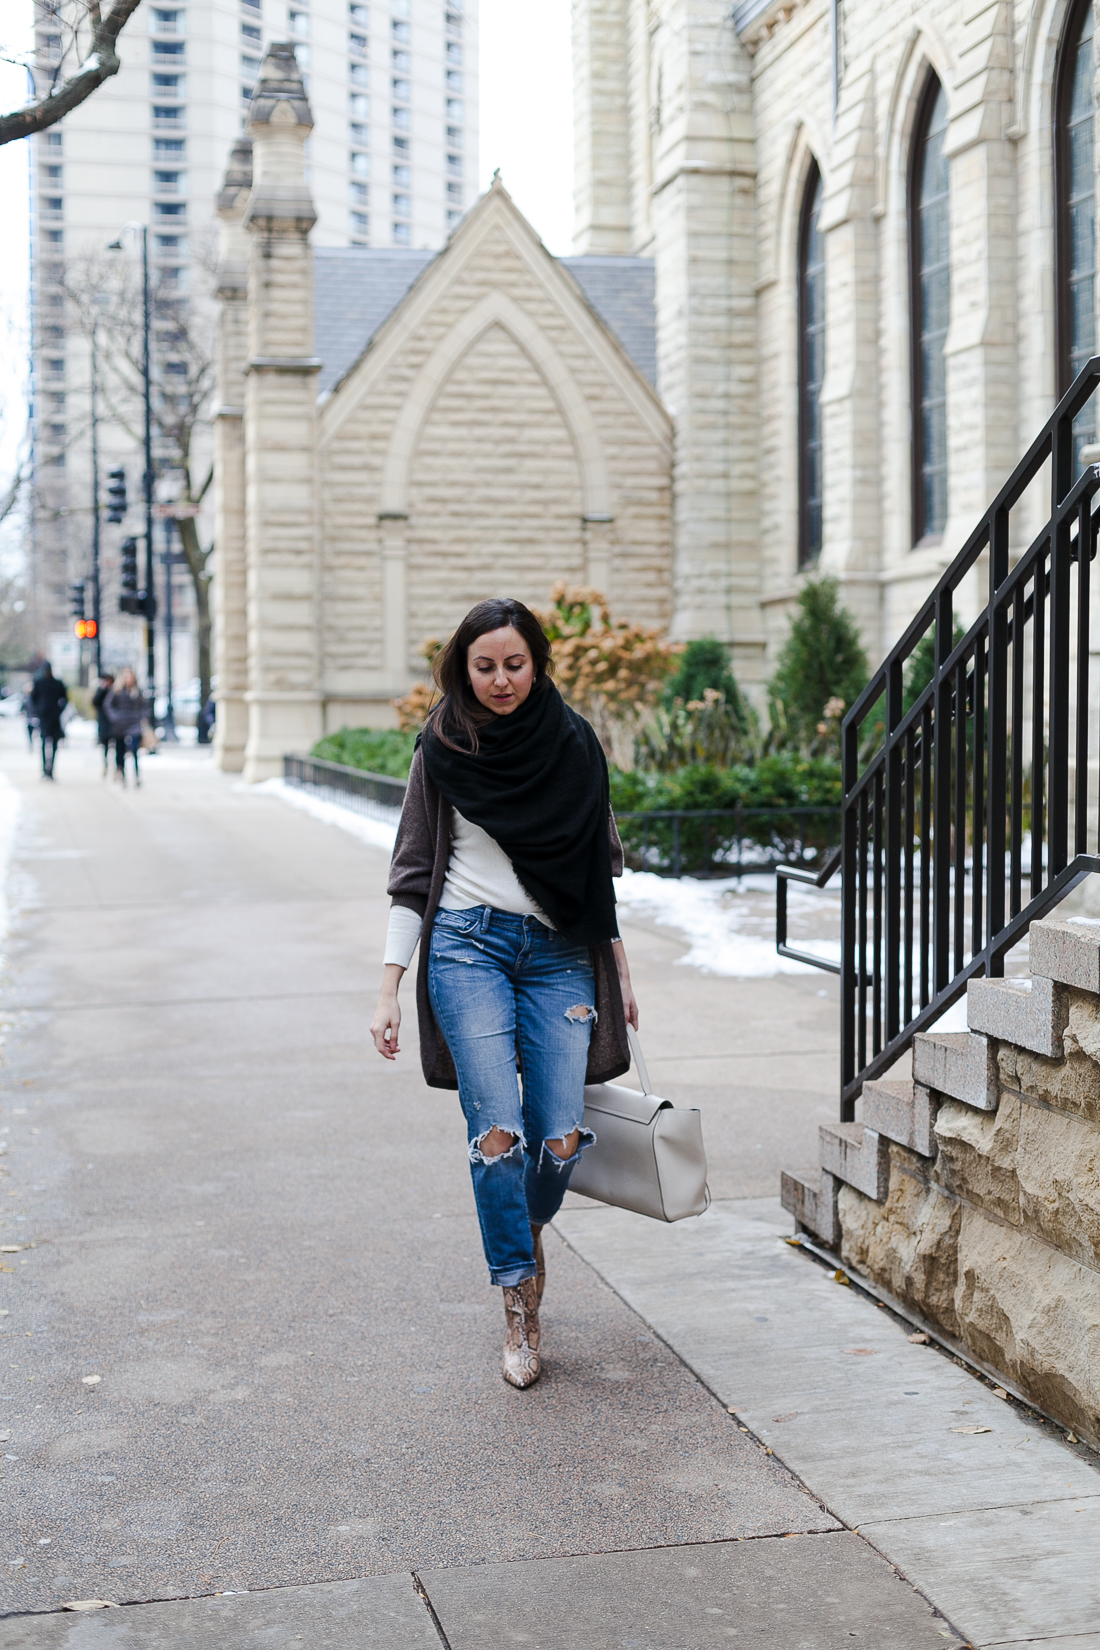 Yana Frigelis of NoMad Luxuries wearing a neutral look with ripped jeans and snake skin booties for Fall in Chicago